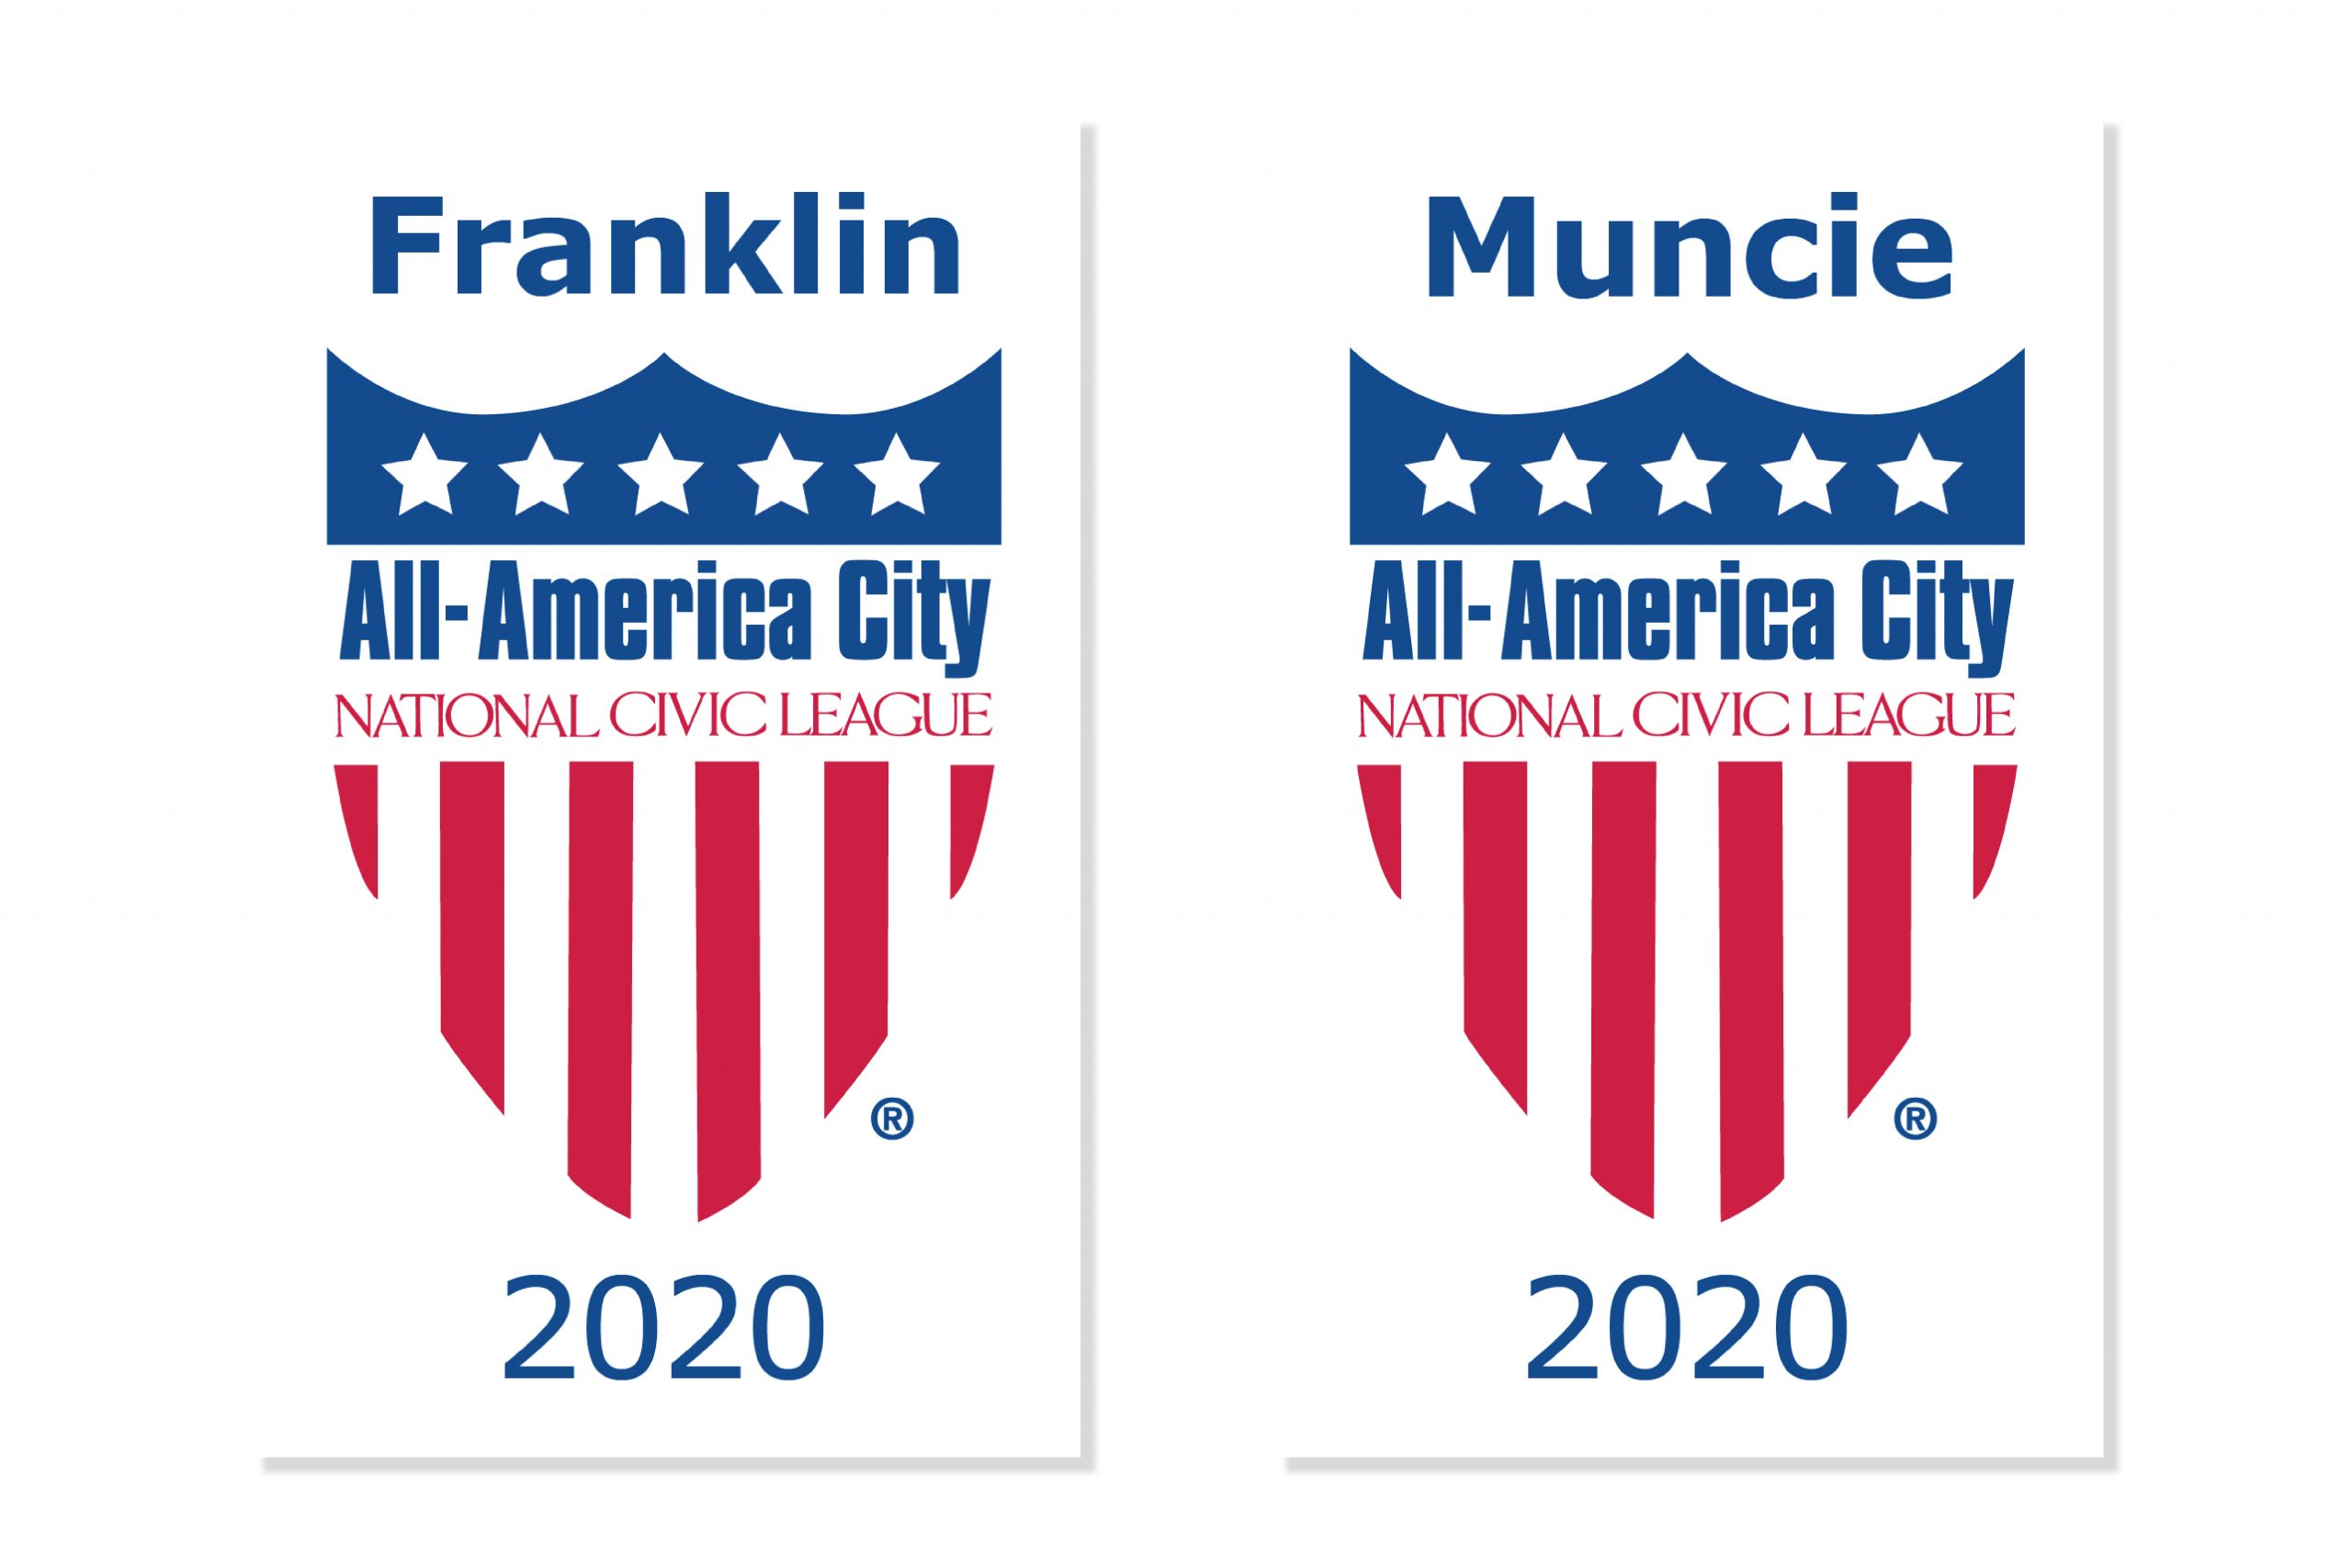 All-America City Awards presented by The National Civic League crest logo